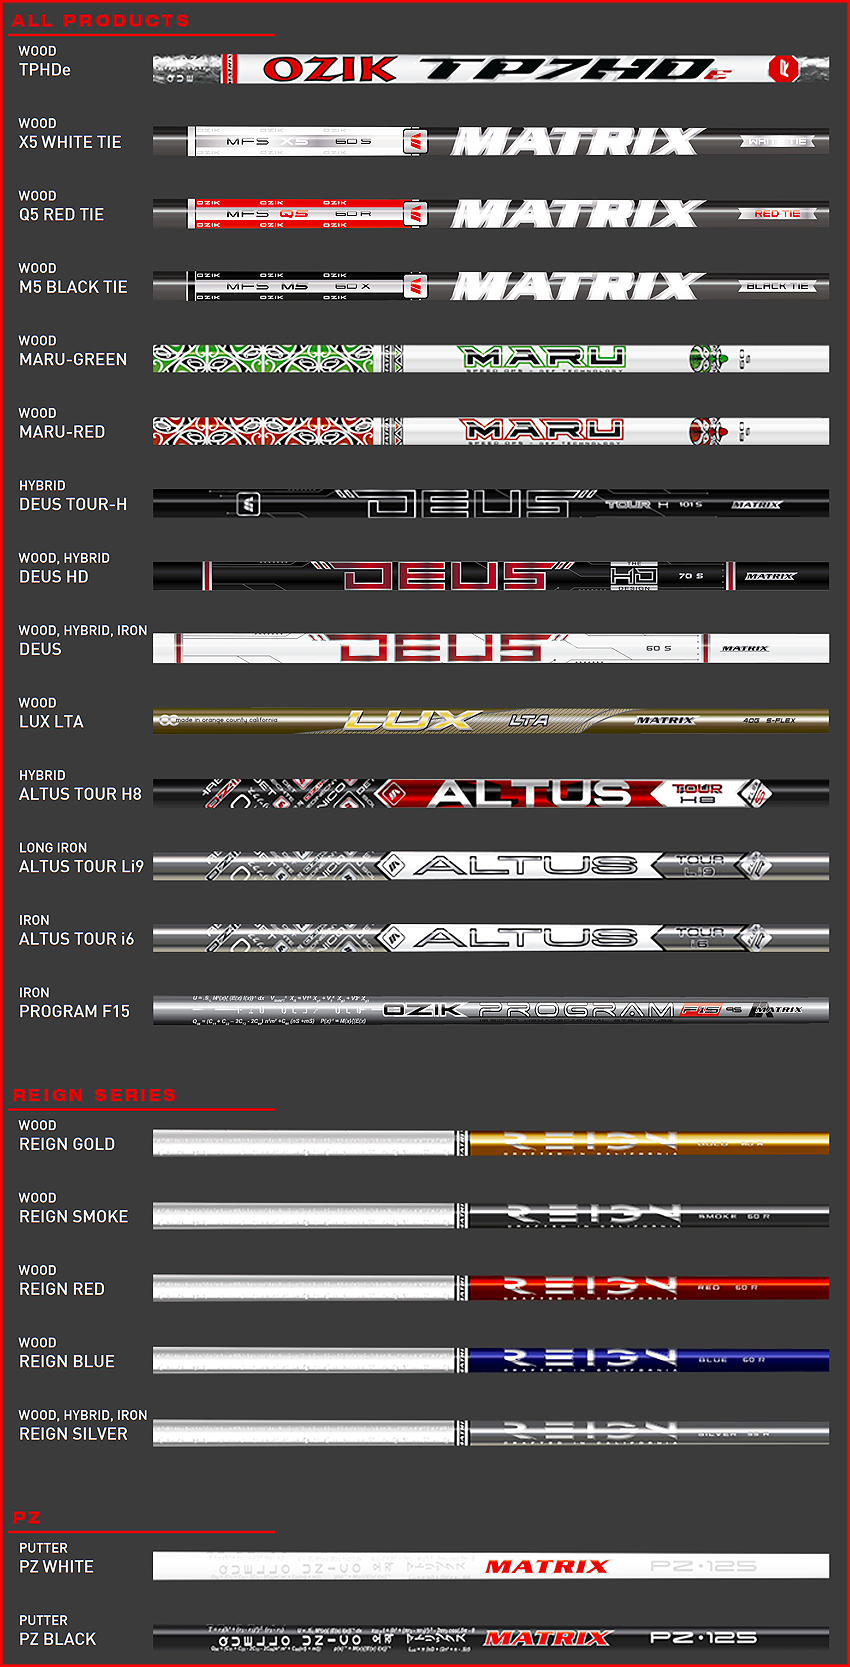 Matrix 2018 shafts